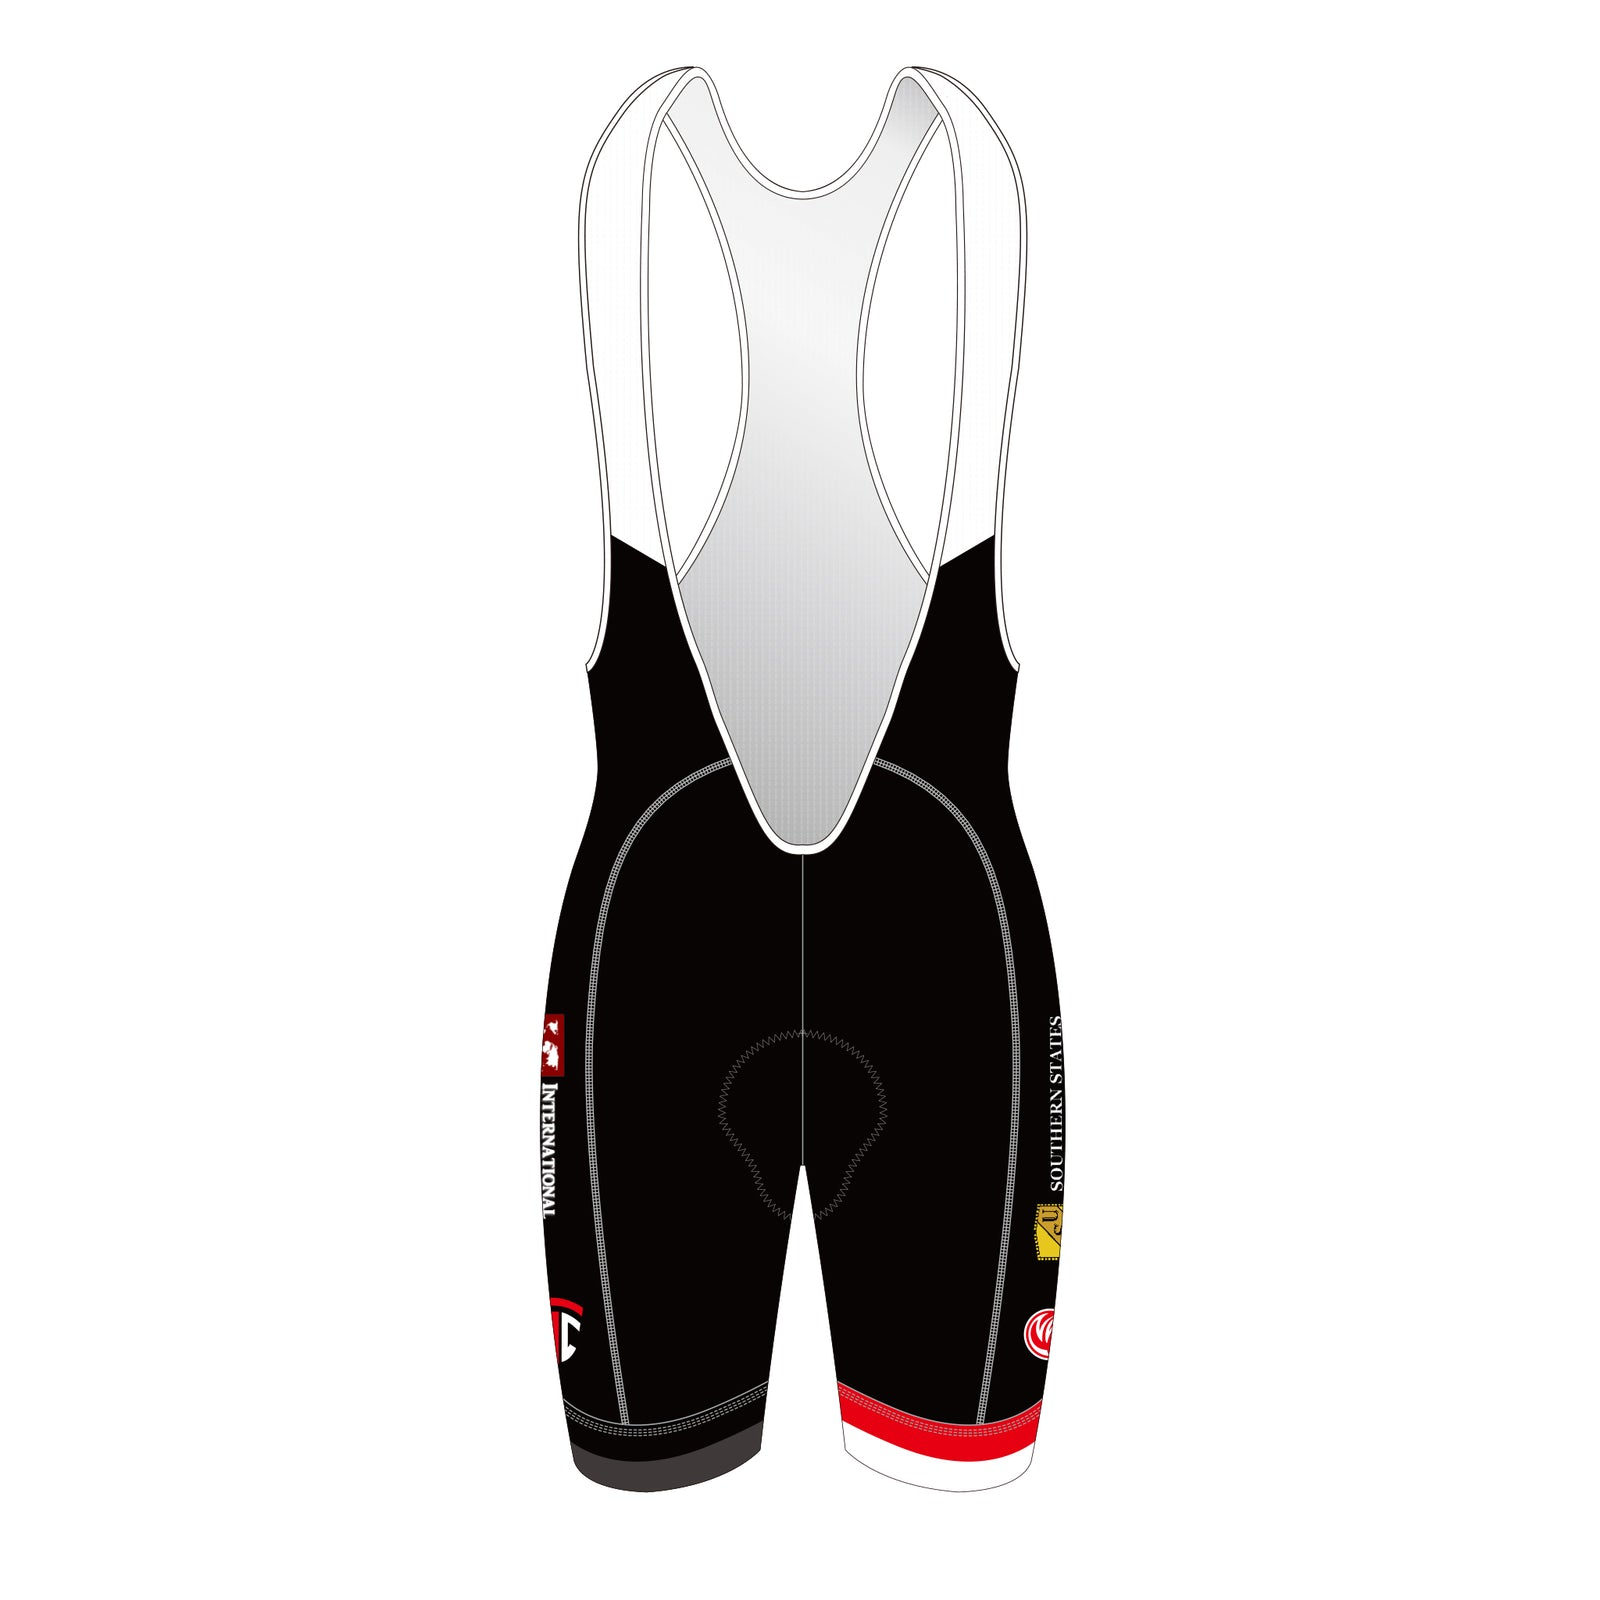 Juliano Teruel PRO Cycling Bib Shorts